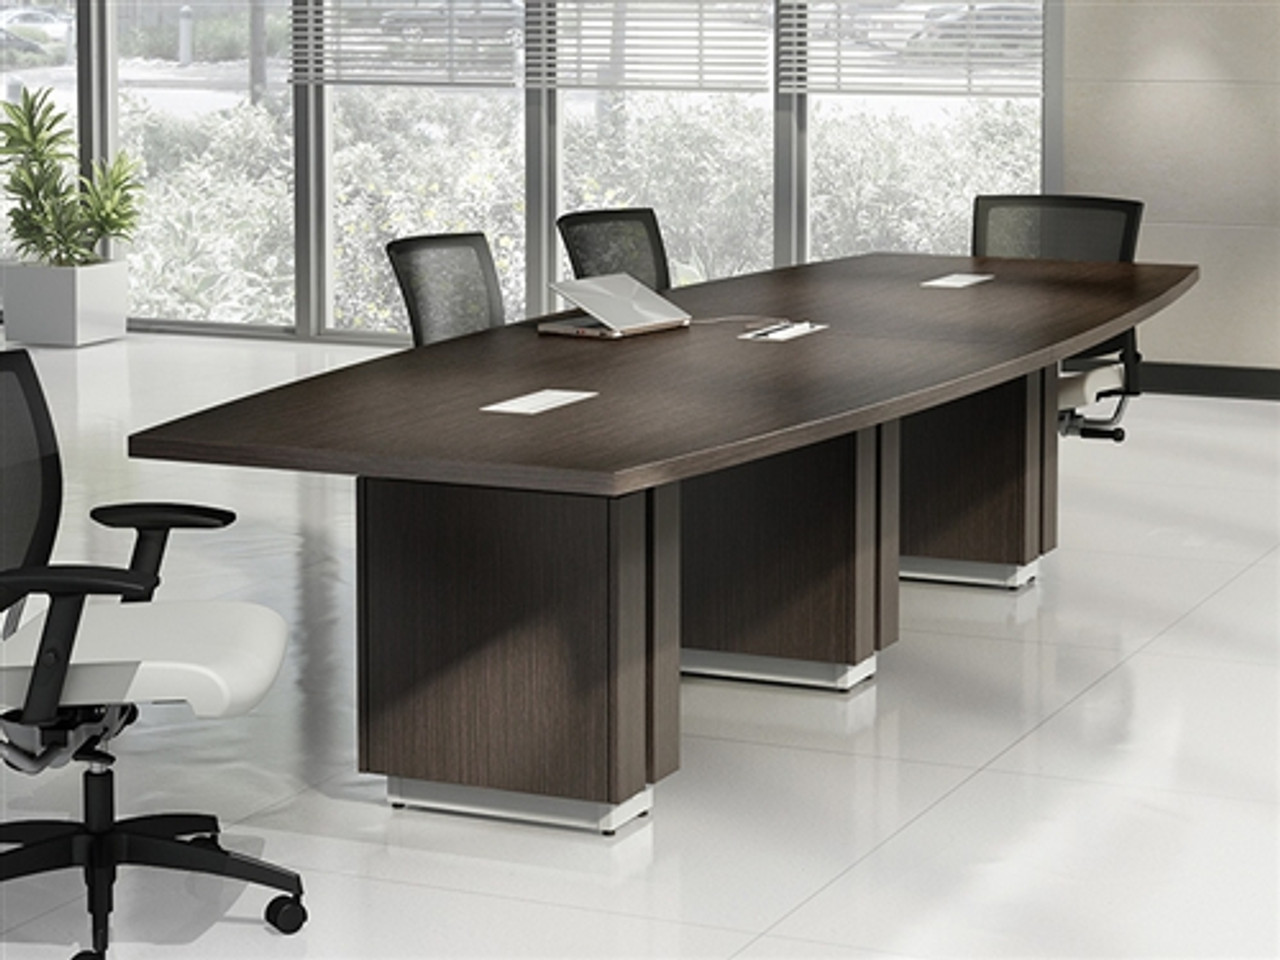 Picture of: Global Zira Series 10 Boat Shaped Table